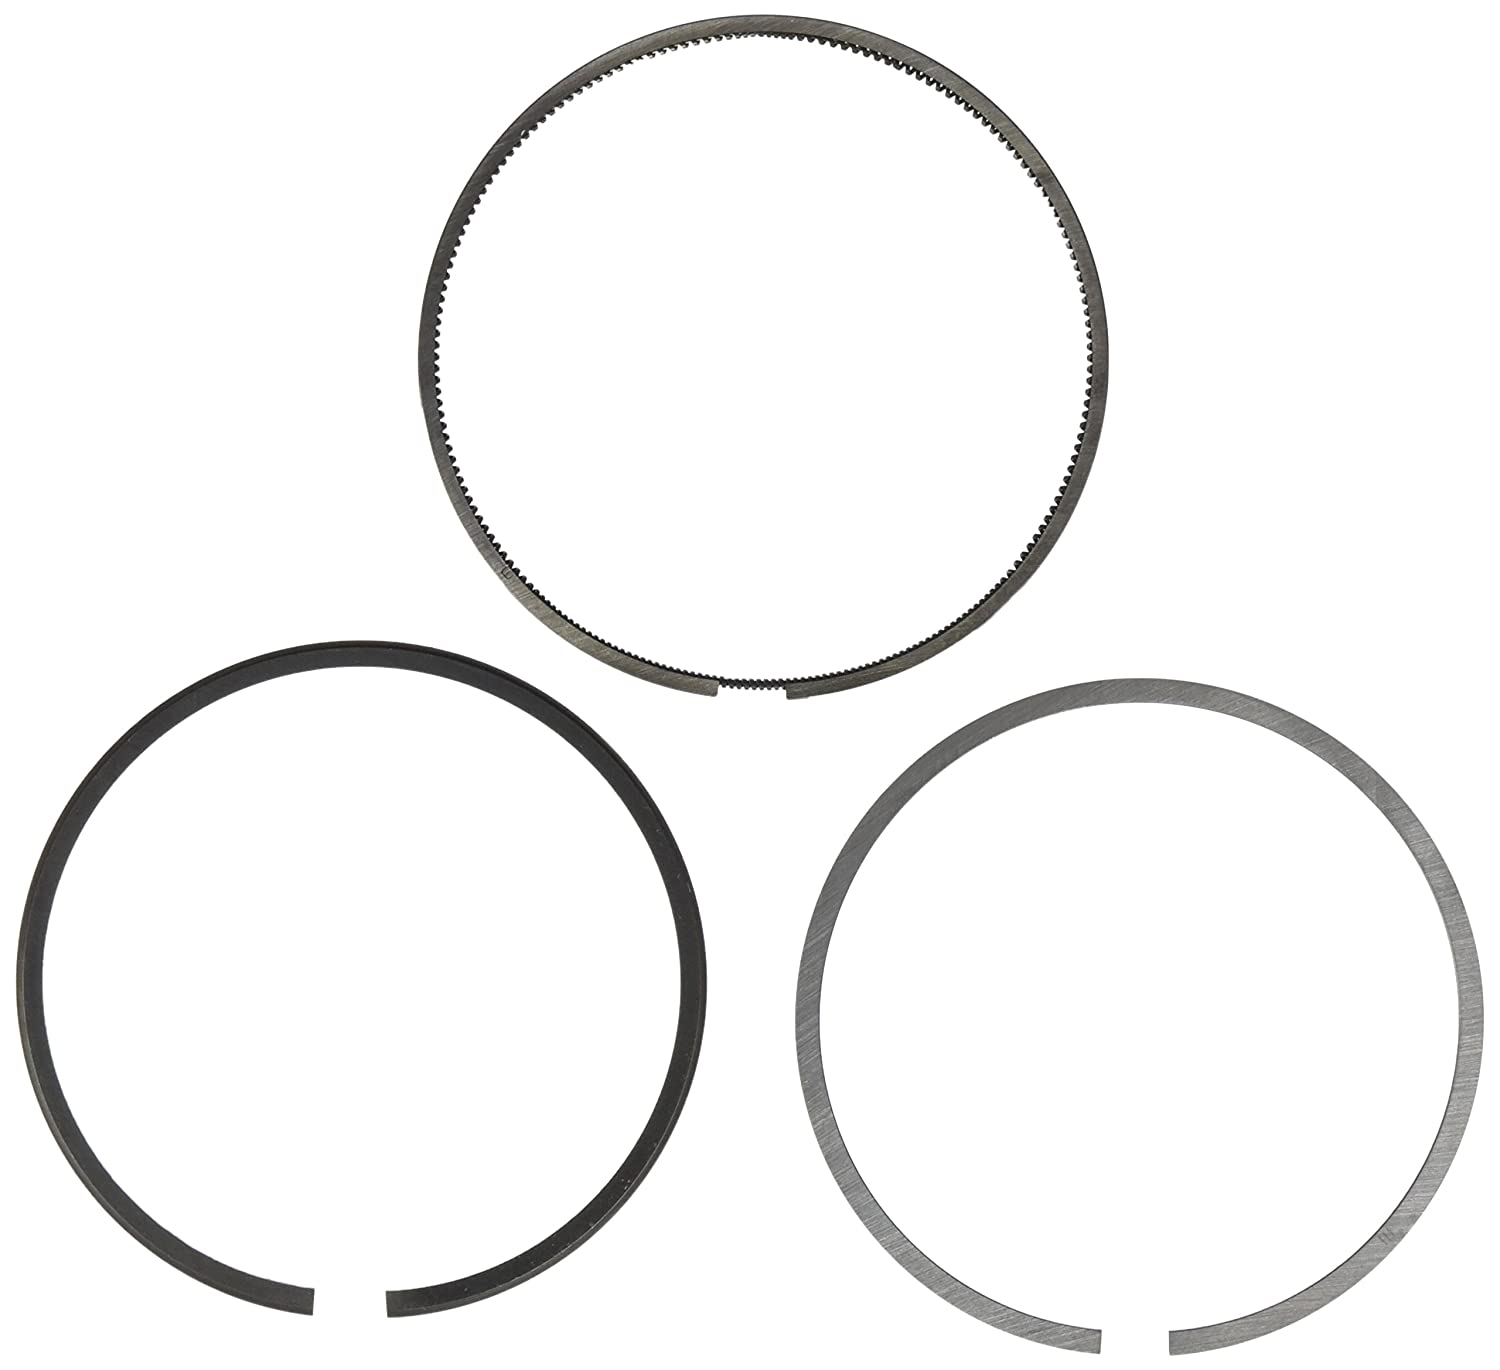 Mahle Original 033 16 N0 Piston Ring Set Mahle Aftermarket GmbH